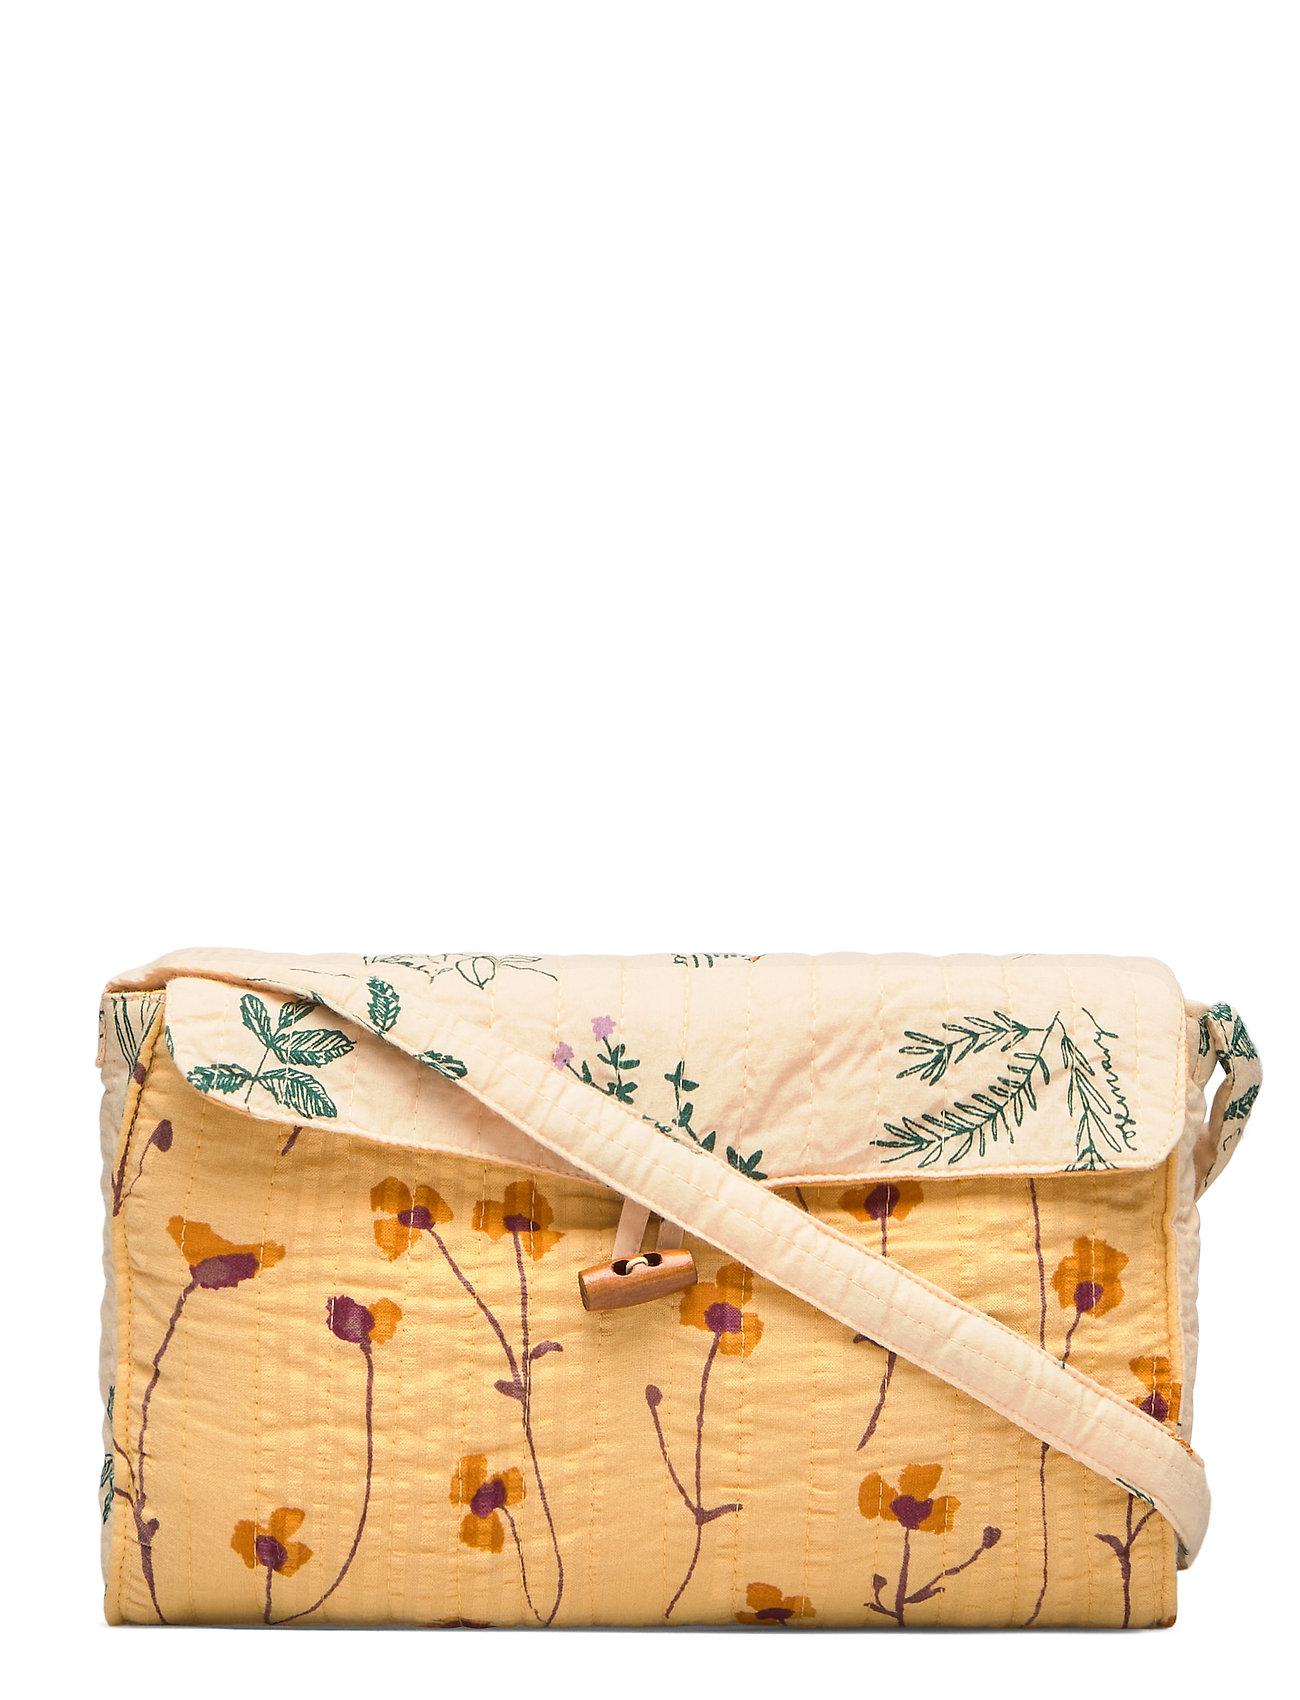 Soft Gallery Patchwork Bag - GOLDEN APRICOT, AOP BUTTERCUP